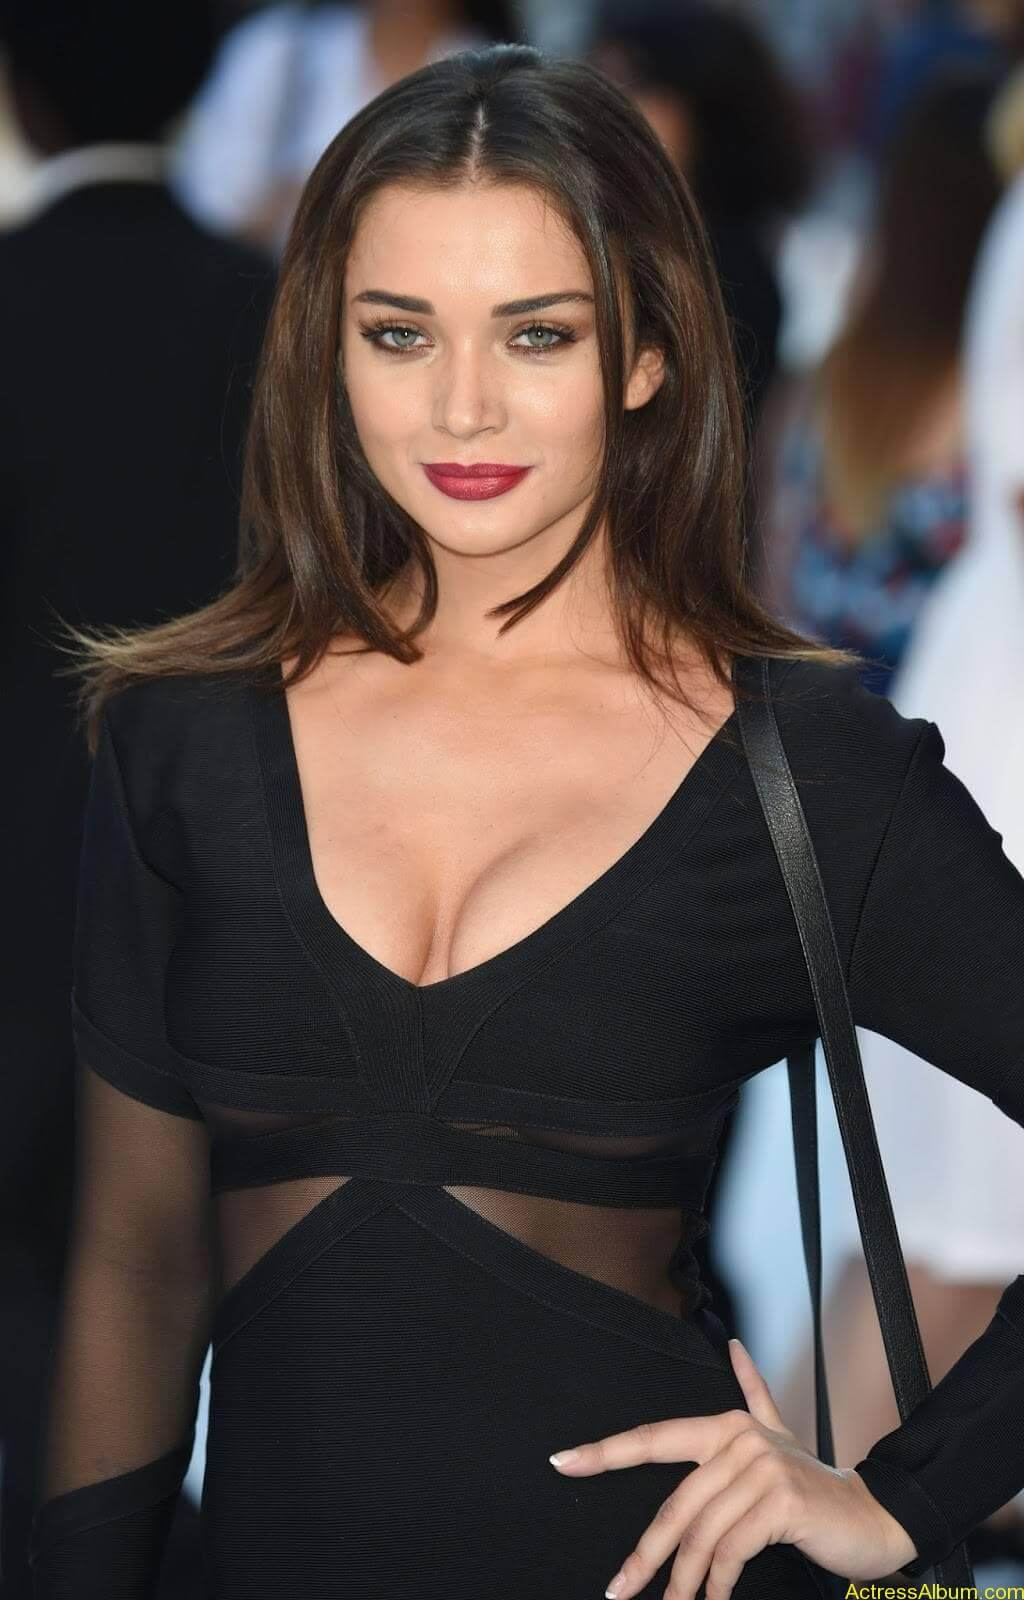 Amy-Jackson-Latest-Stills-Photos-Pictures-6